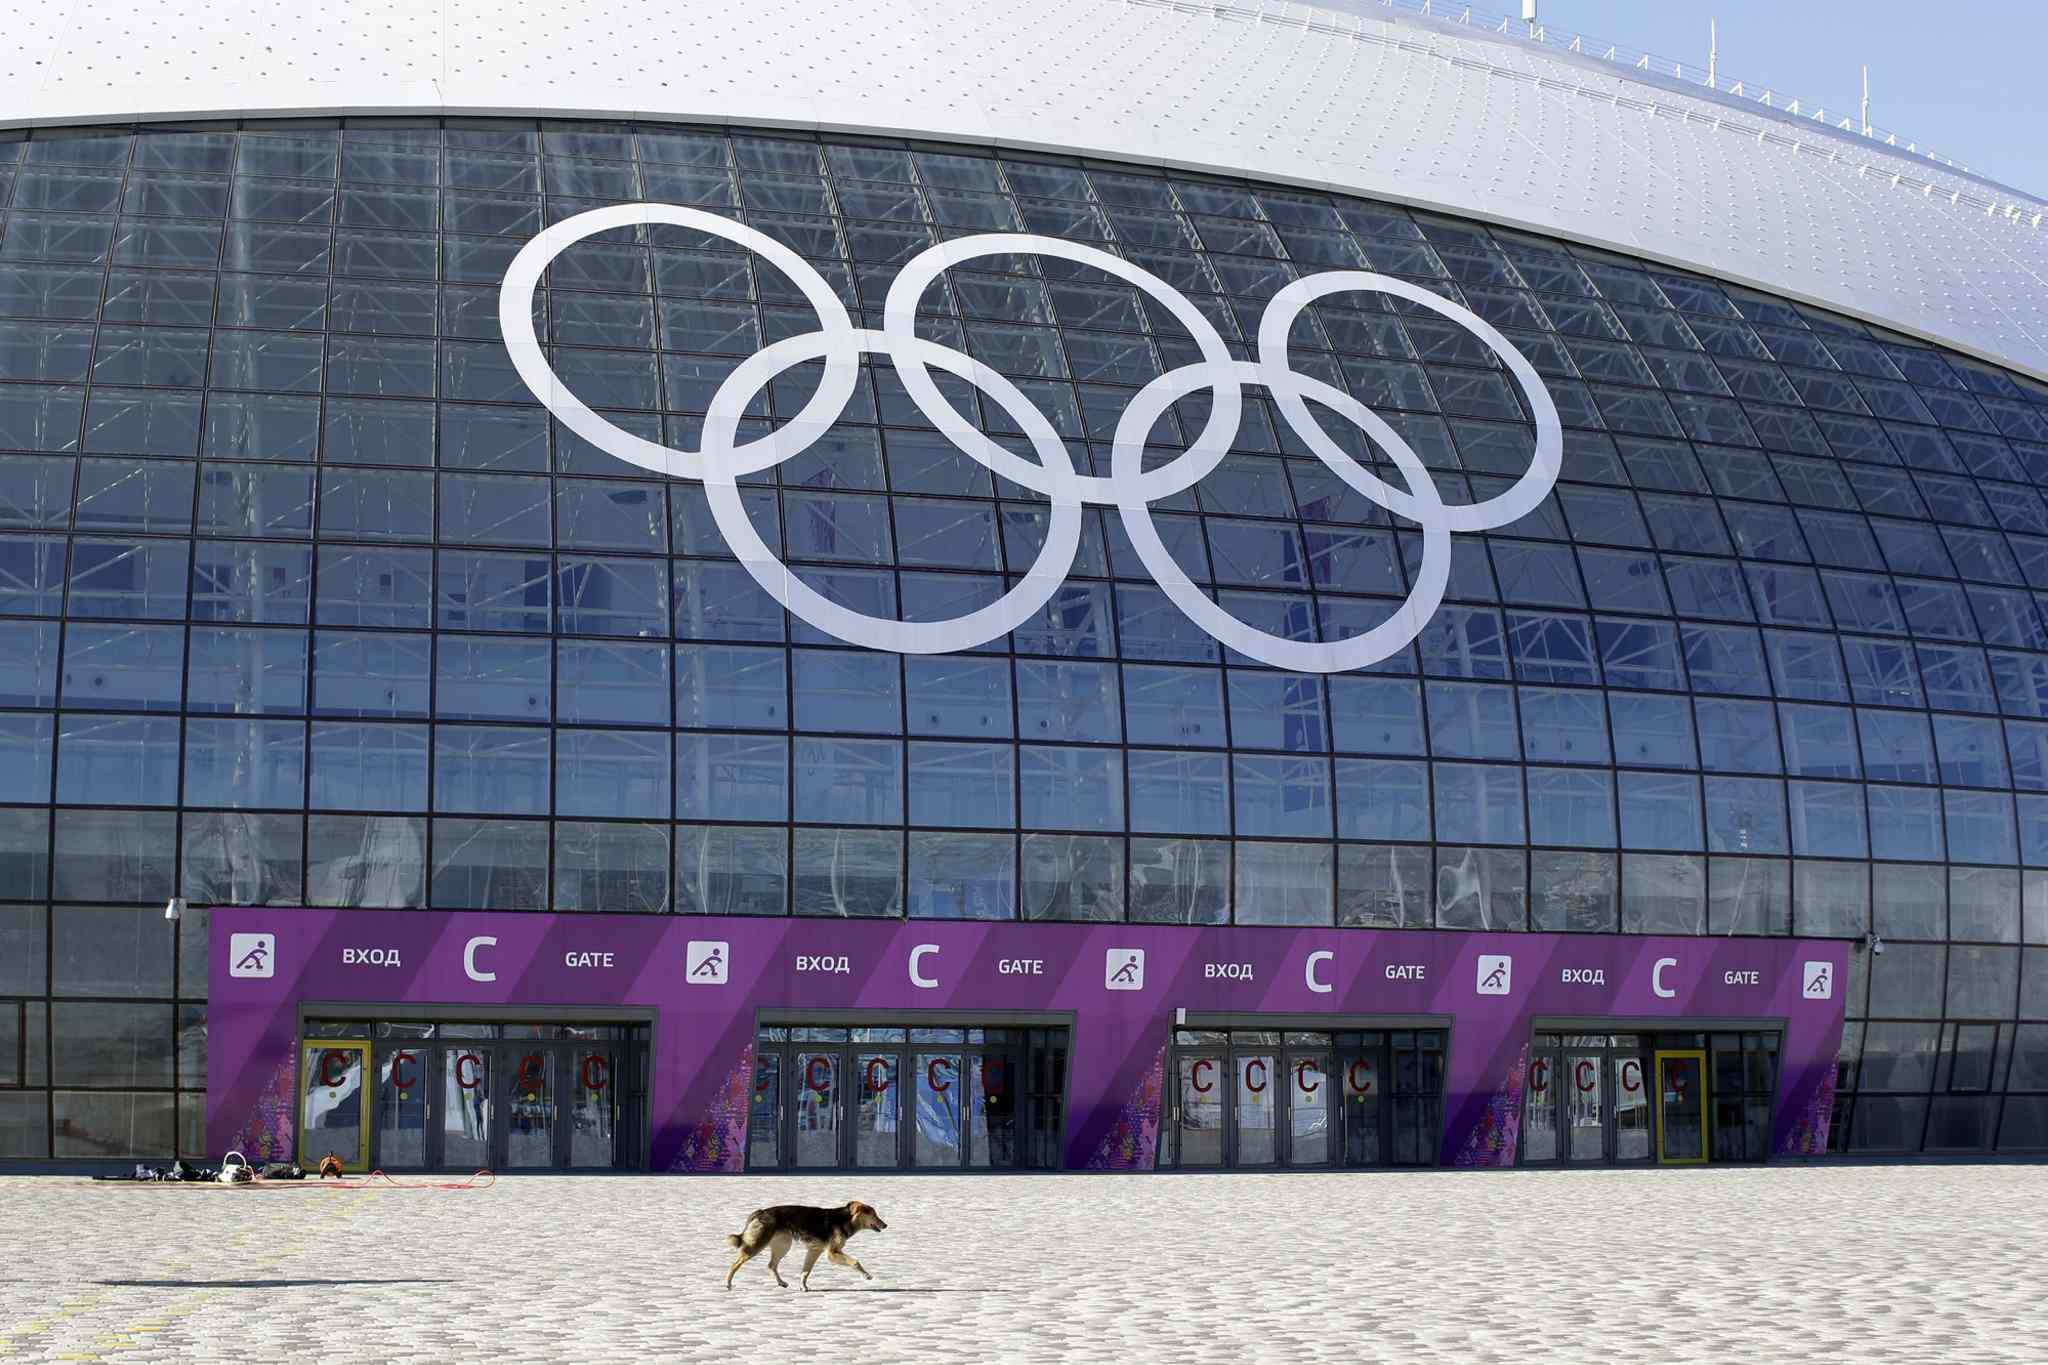 A stray dog walks outside the Ice Dome venue as preparations continue for the 2014 Winter Olympics in Sochi, Russia, Monday.